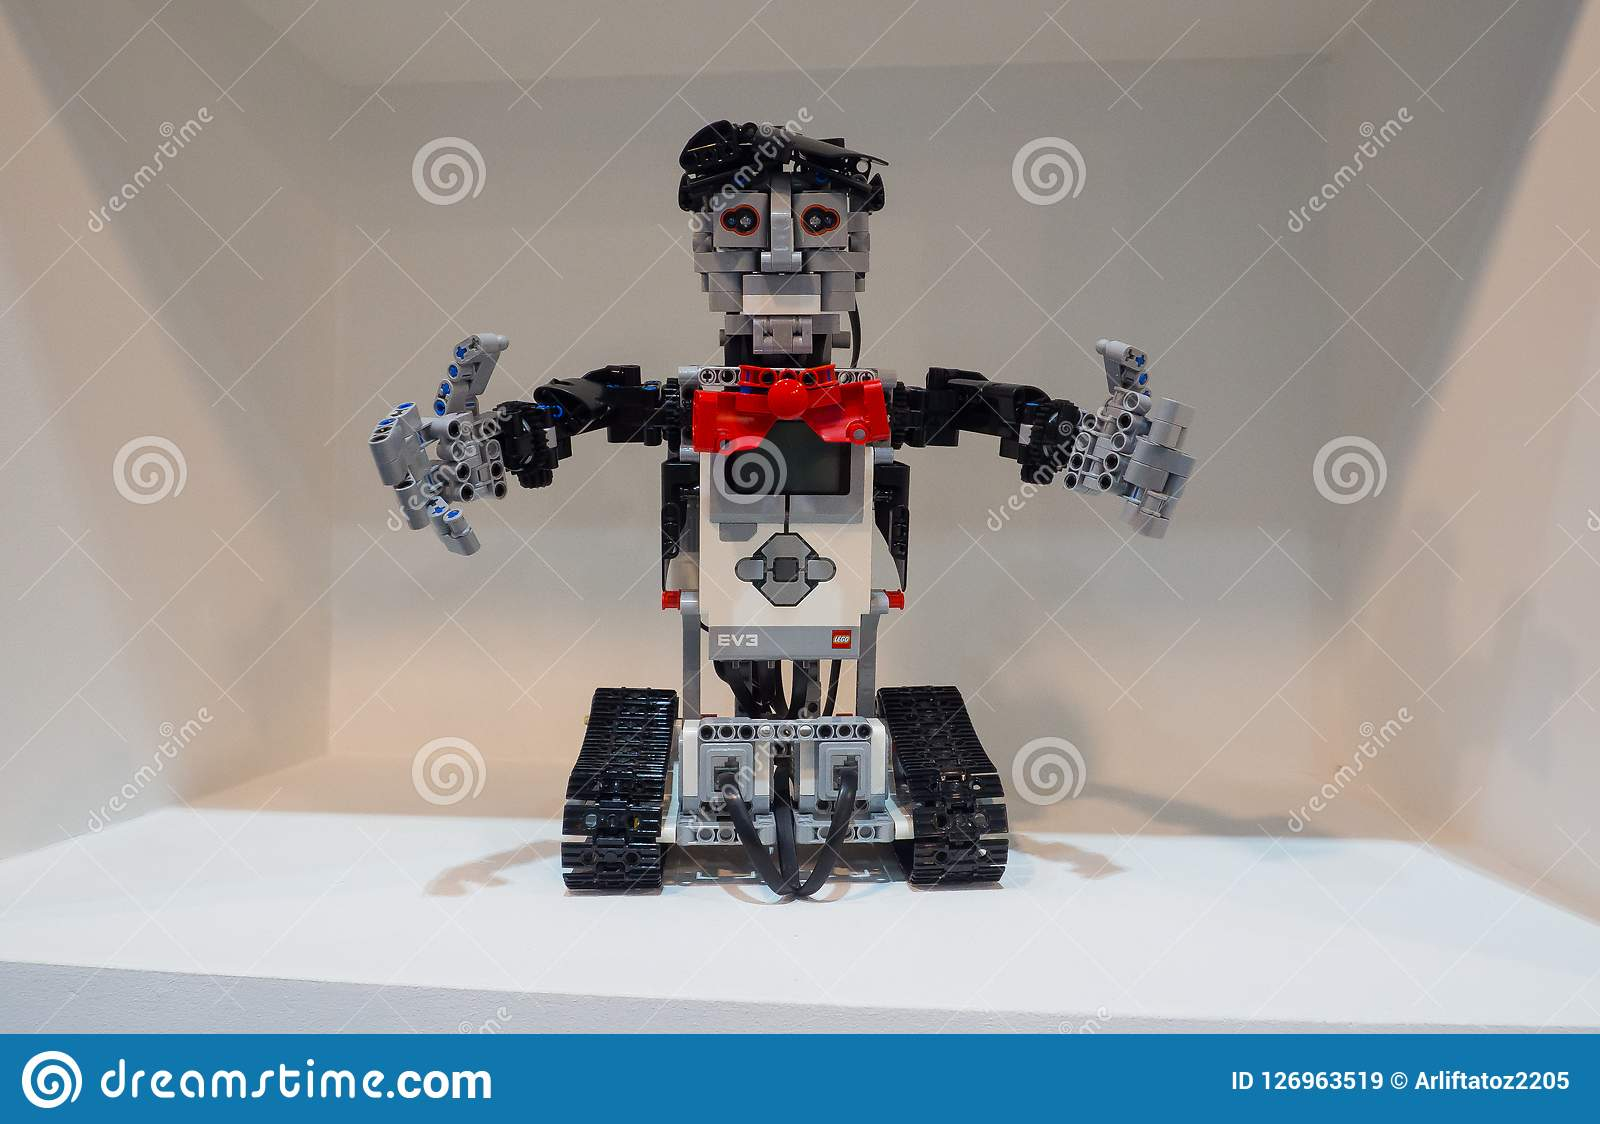 The Education Edition Of Lego Mindstorms EV3 Is The Third